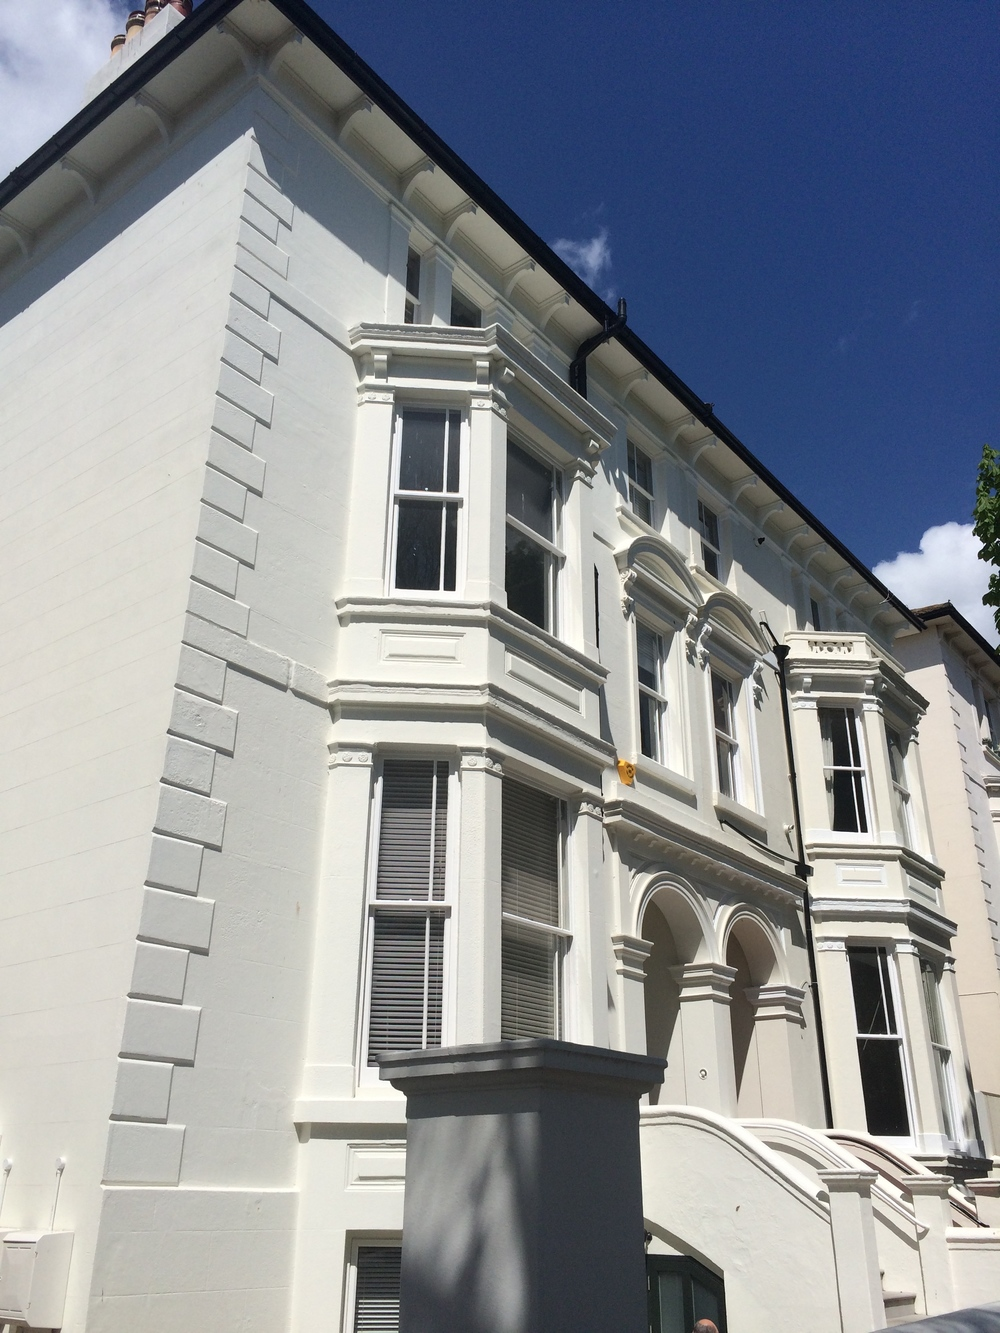 Ventnor Villas   Conversions of flats back into family home in Hove